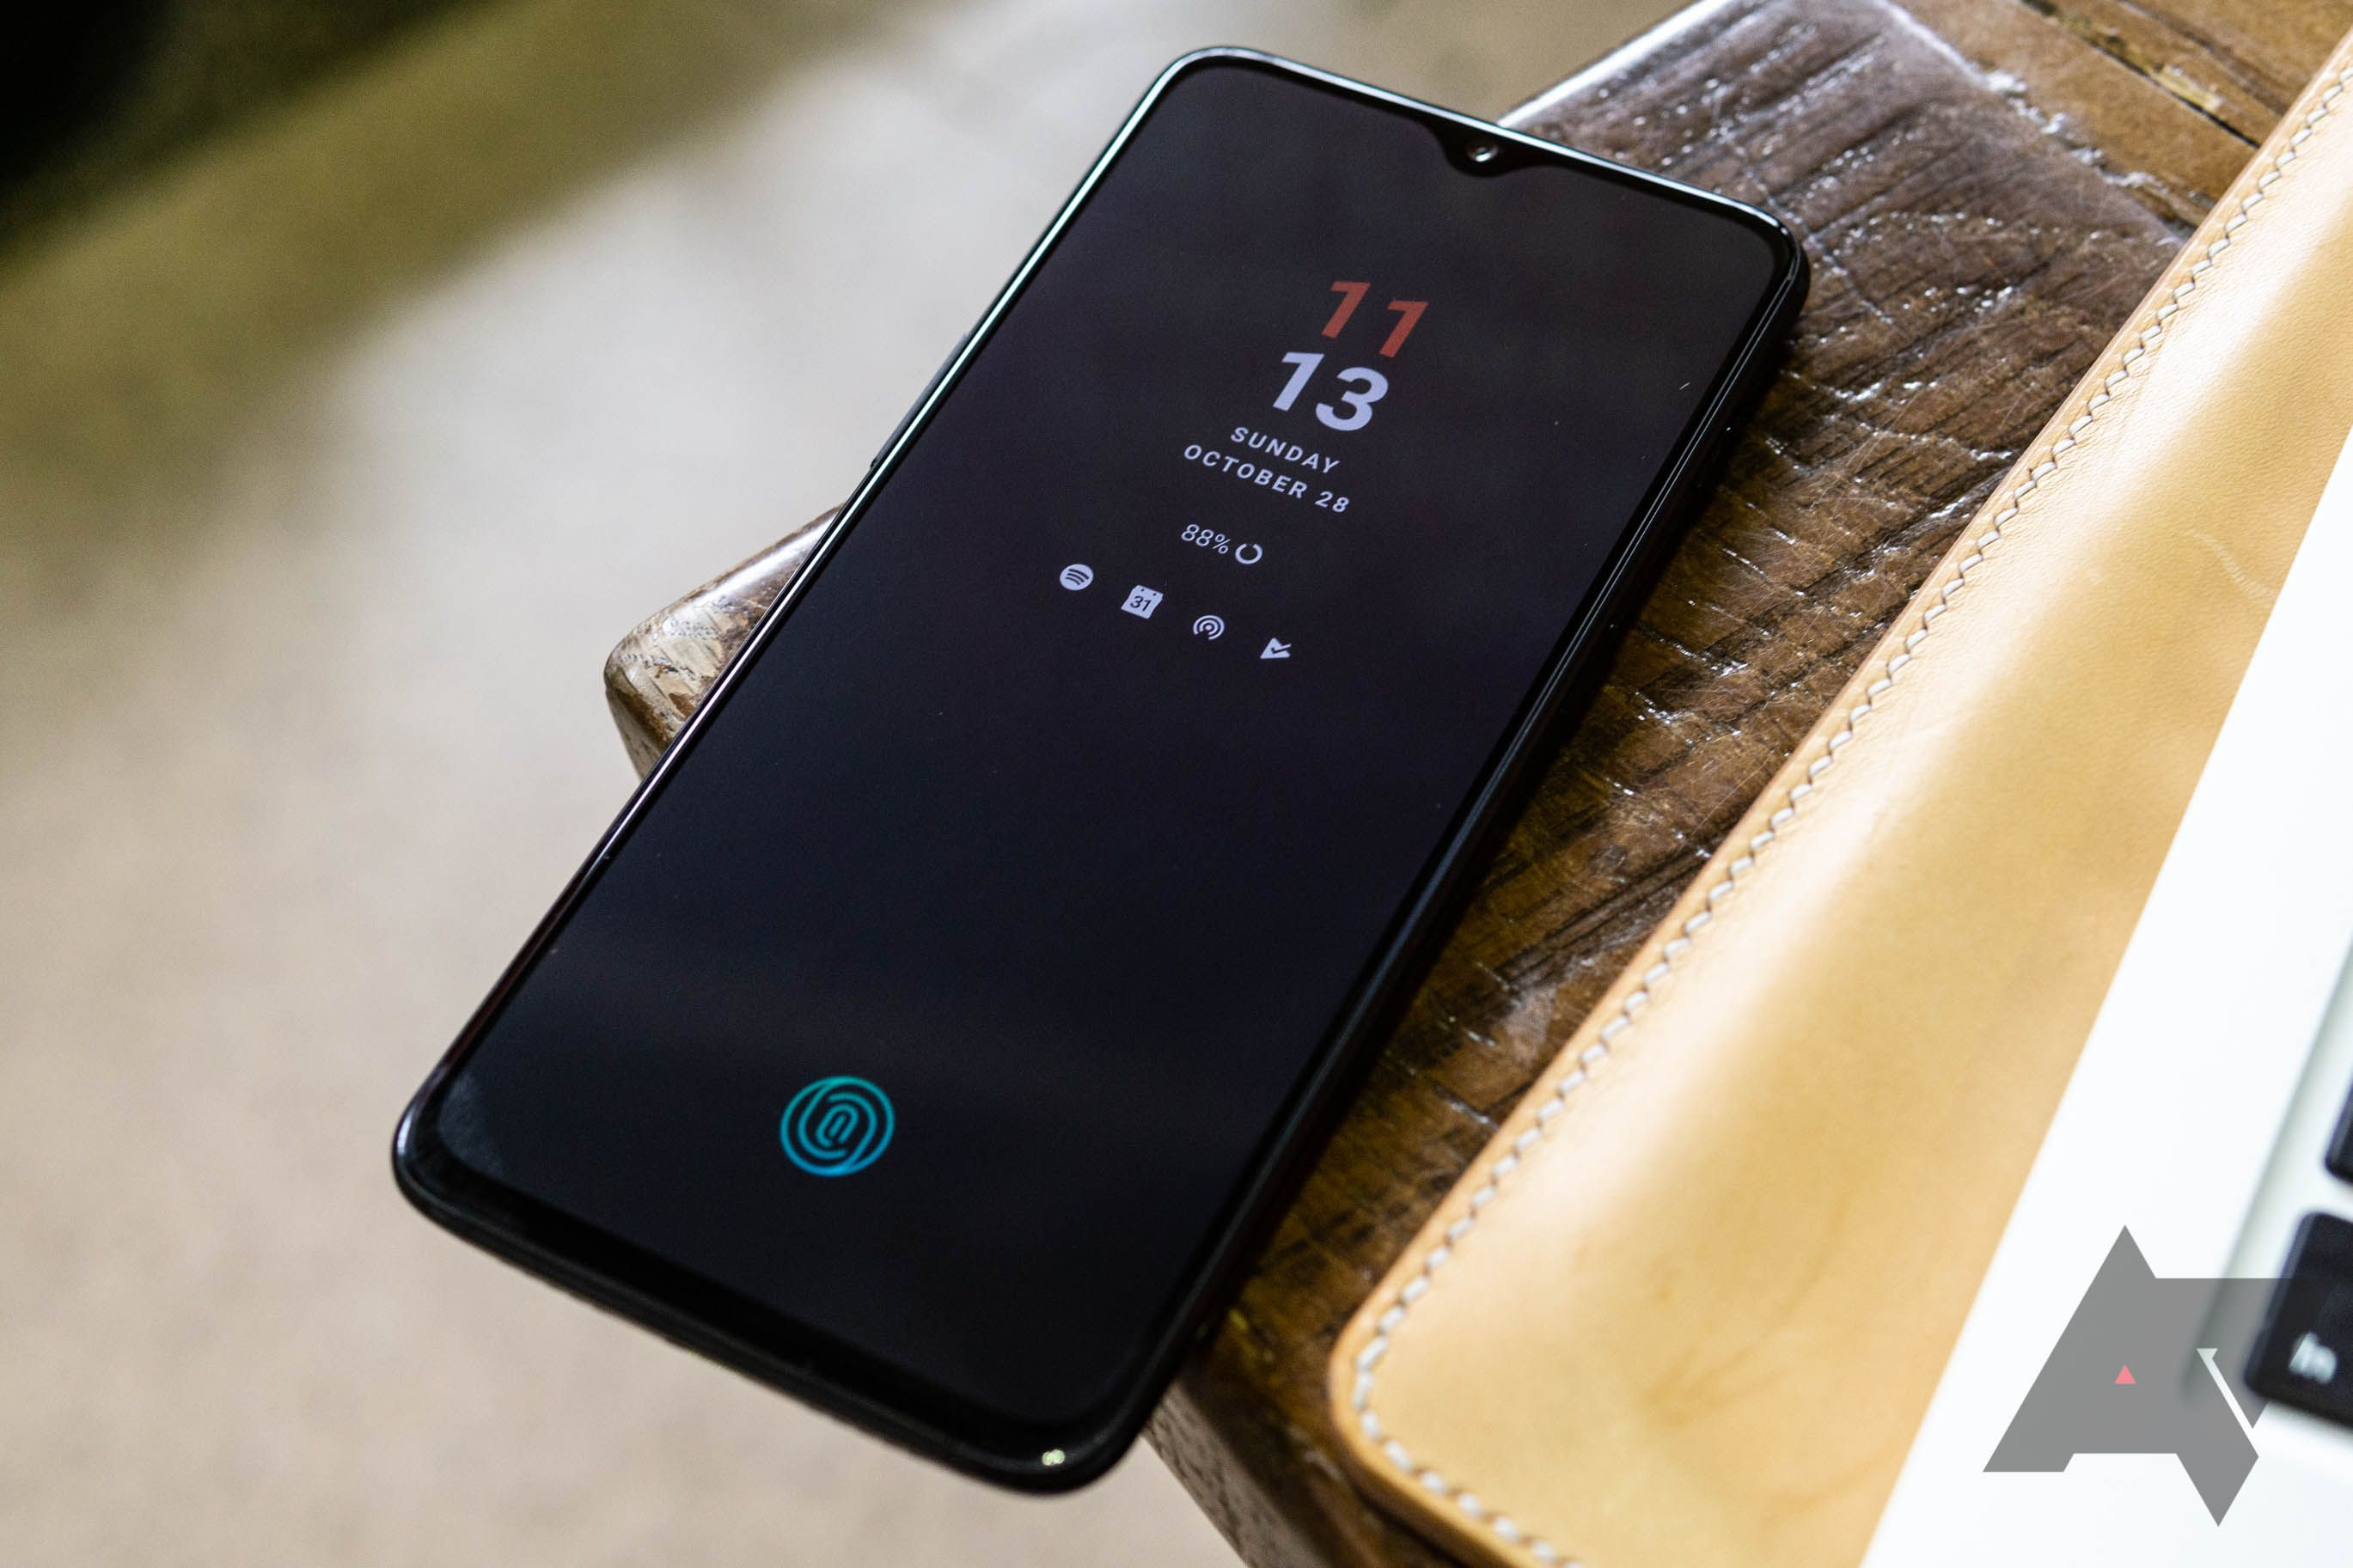 Oppo joins Wireless Power Consortium, future OnePlus and Oppo phones may support Qi charging